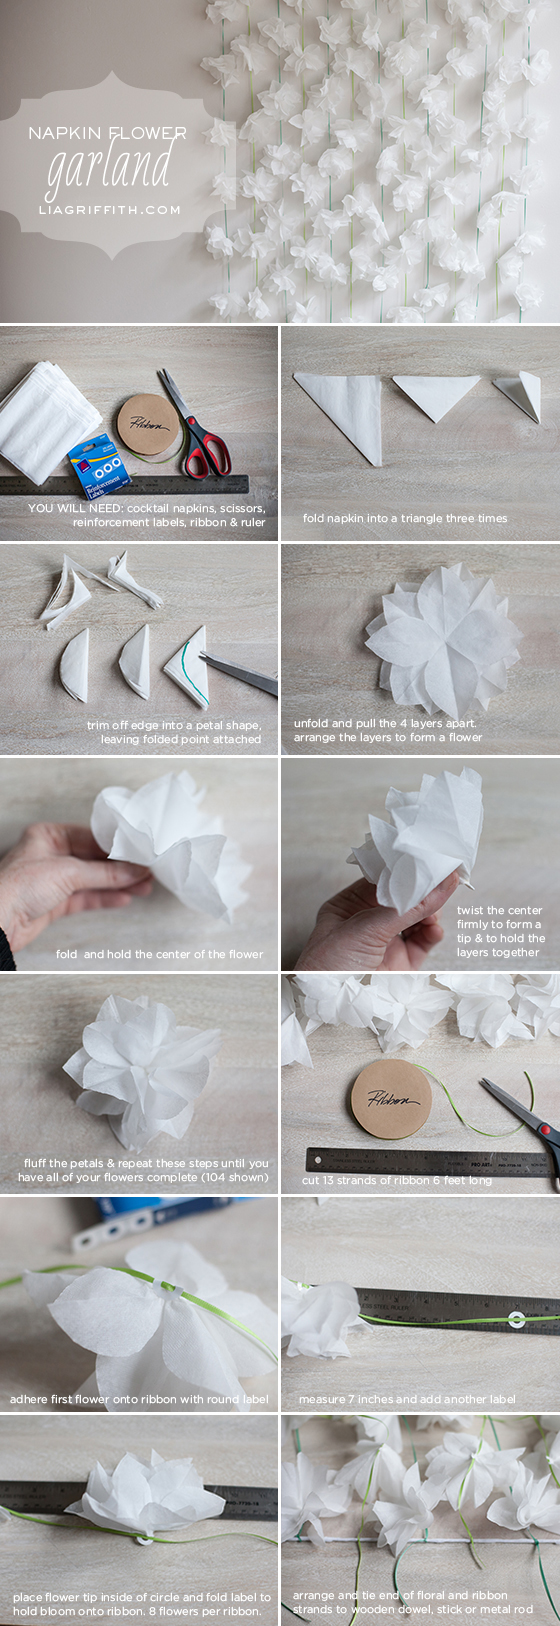 Napkin Flower Garland Tutorial